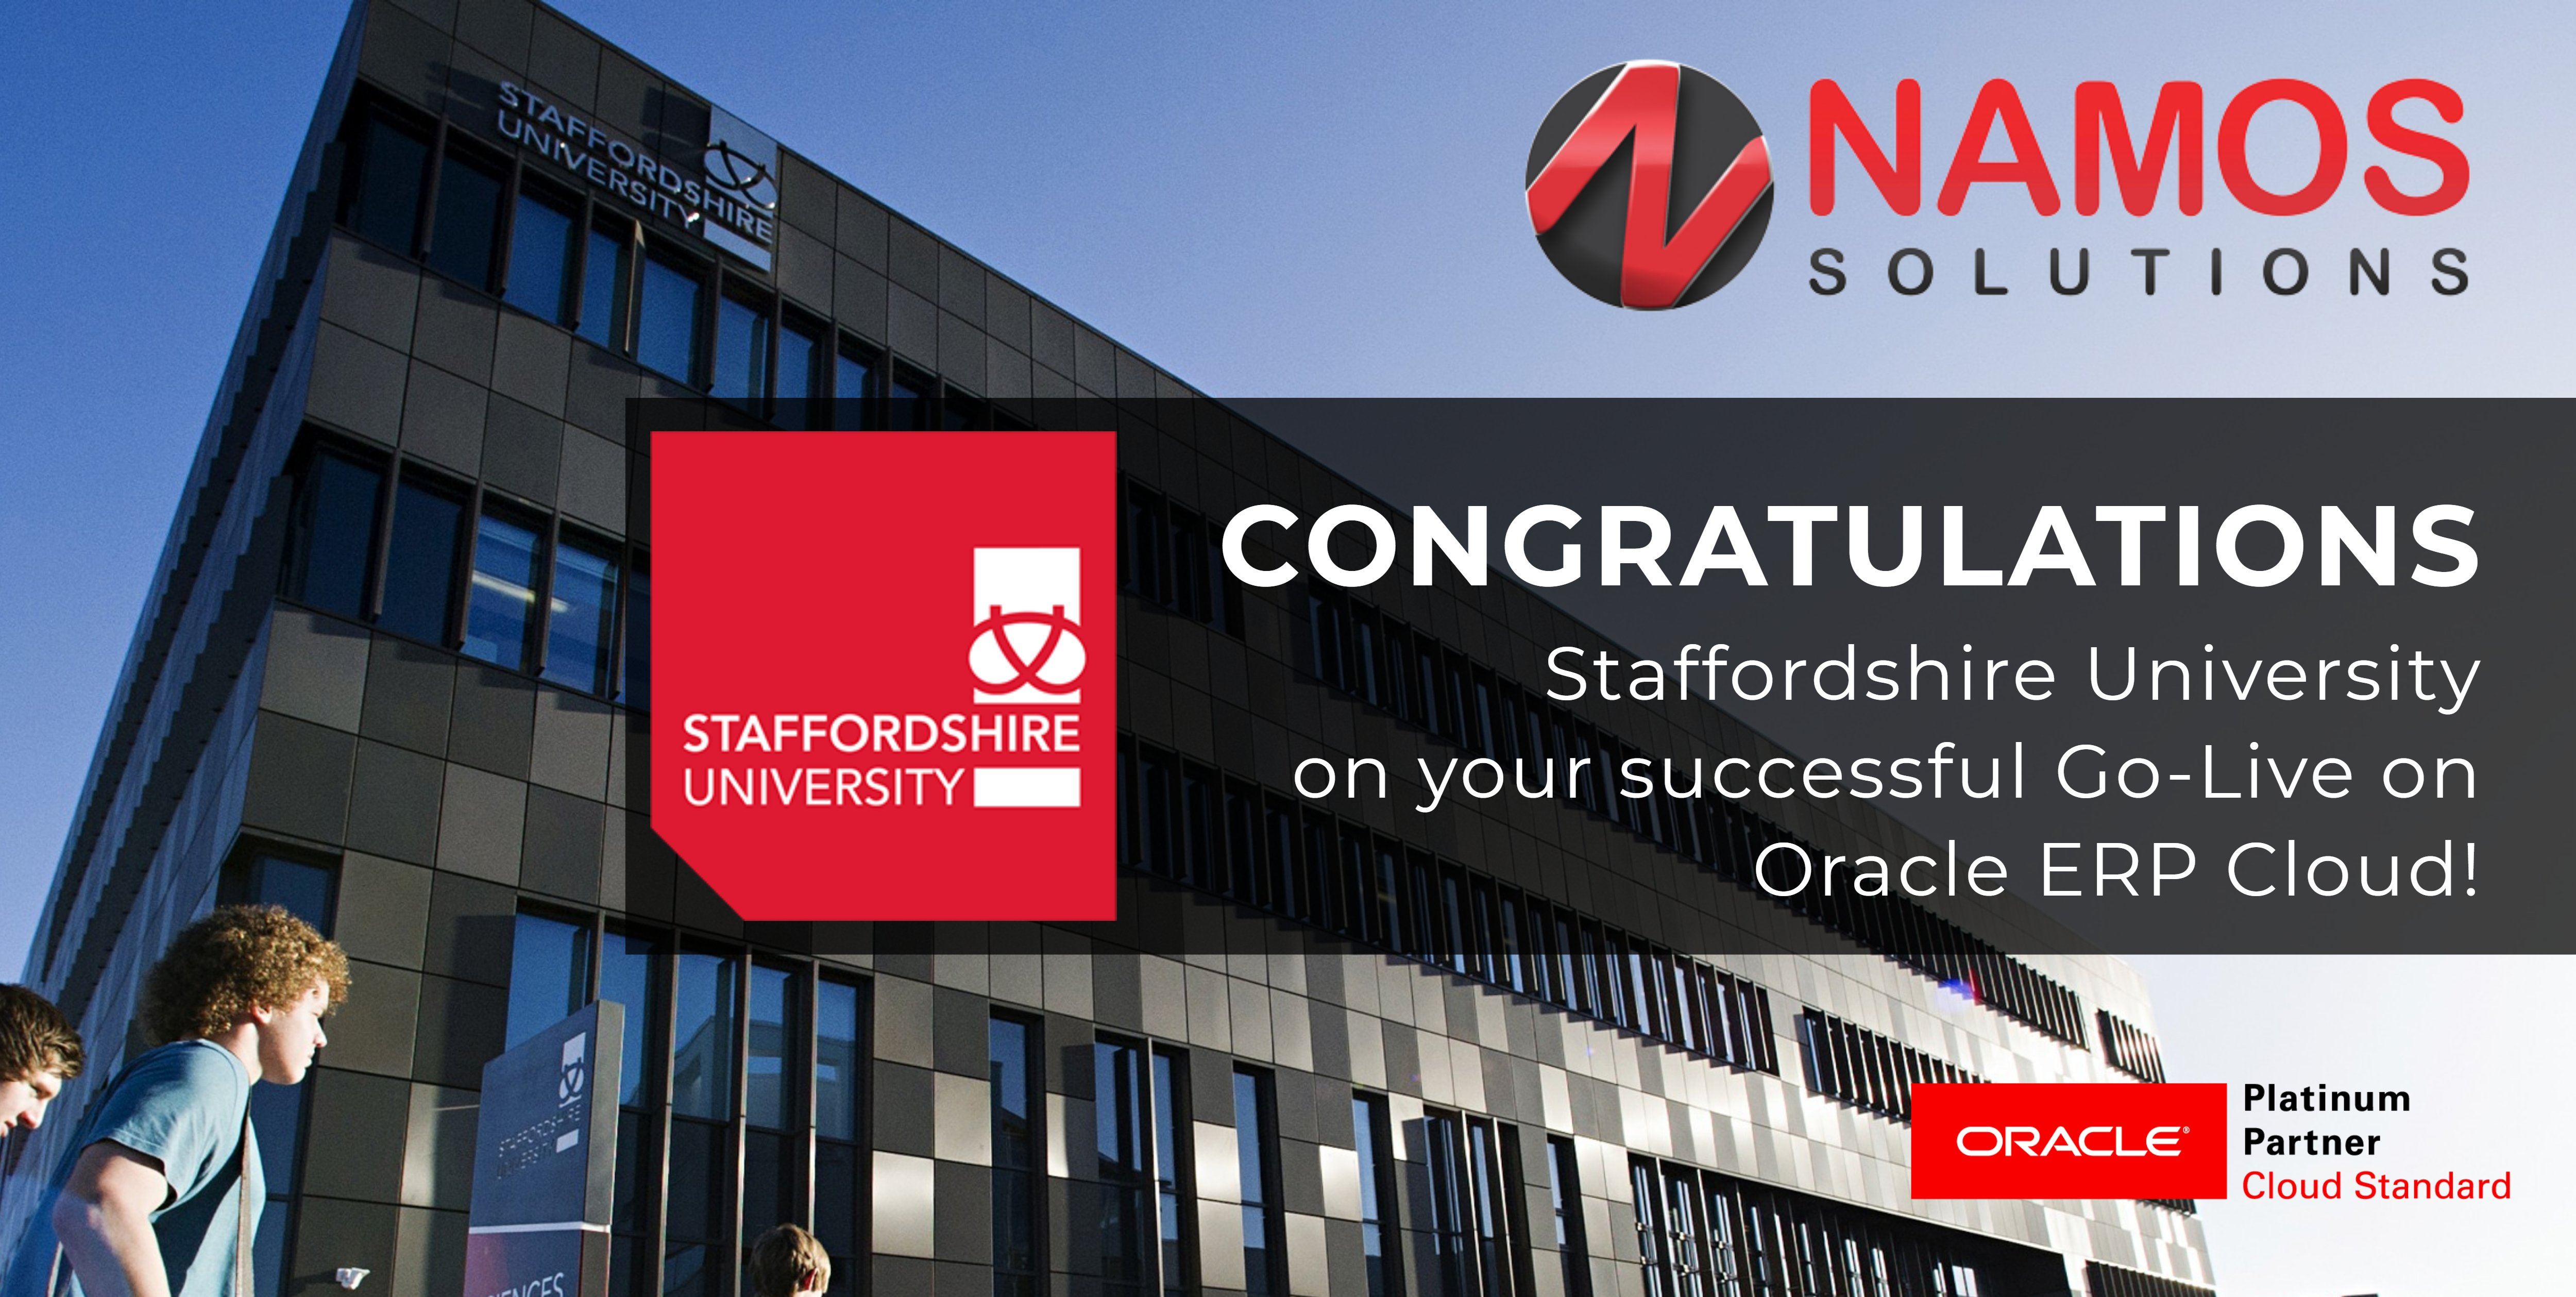 Staffordshire University Goes Live on Oracle ERP Cloud